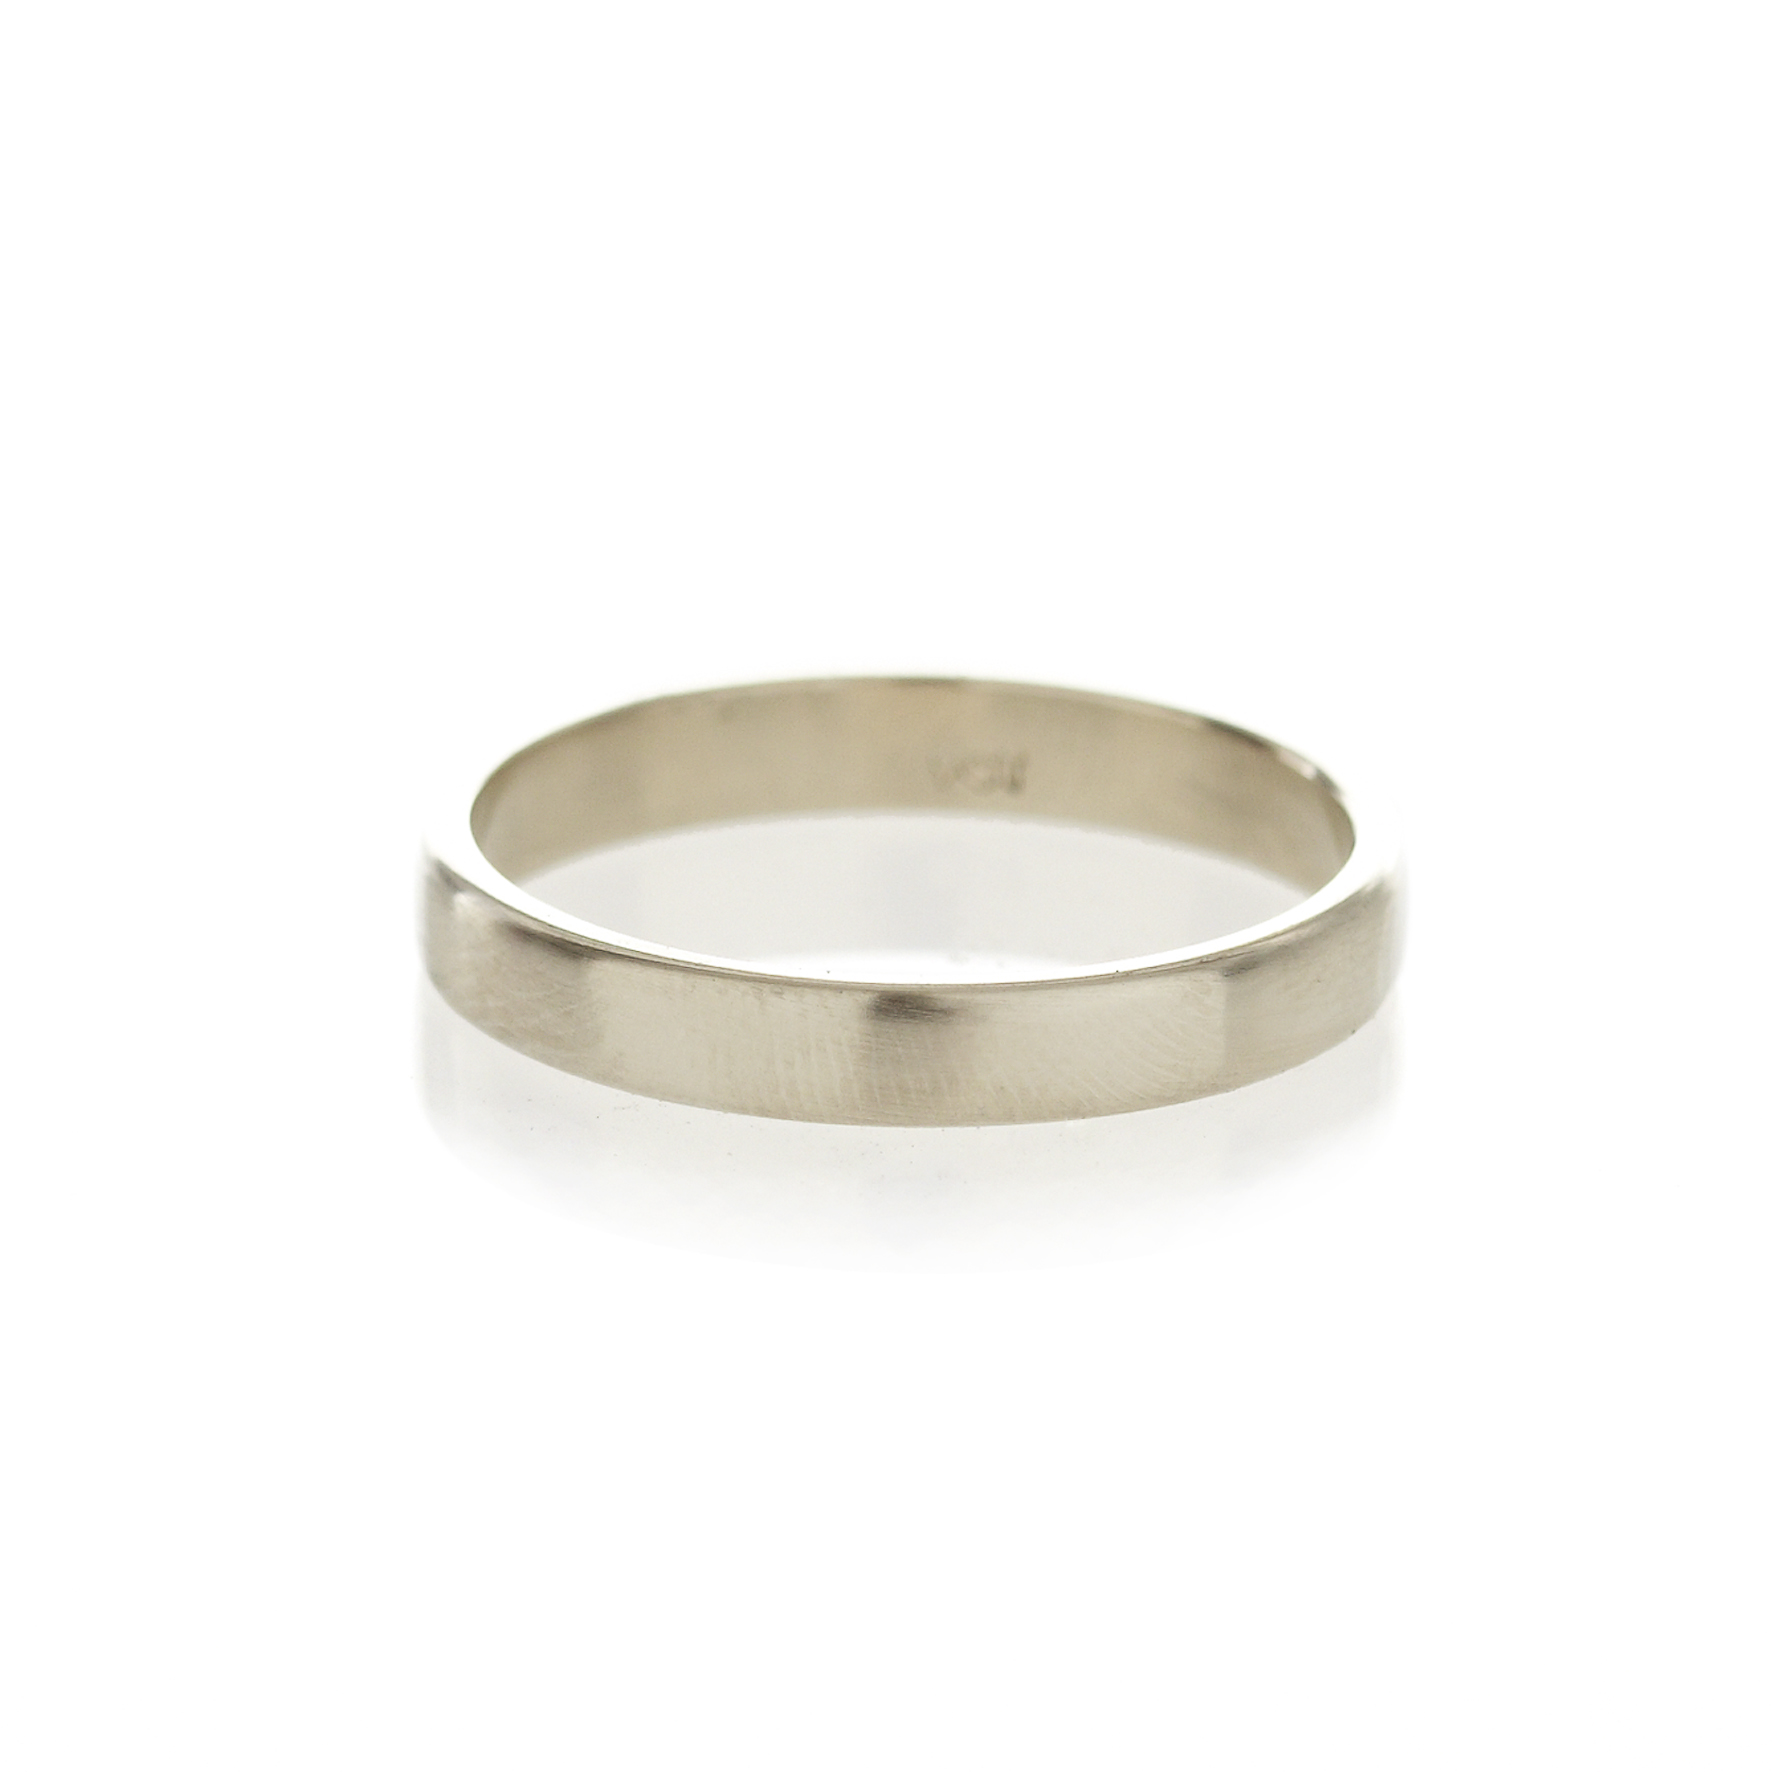 A square profile, 9ct white gold men's band, with a brushed or polished finish.